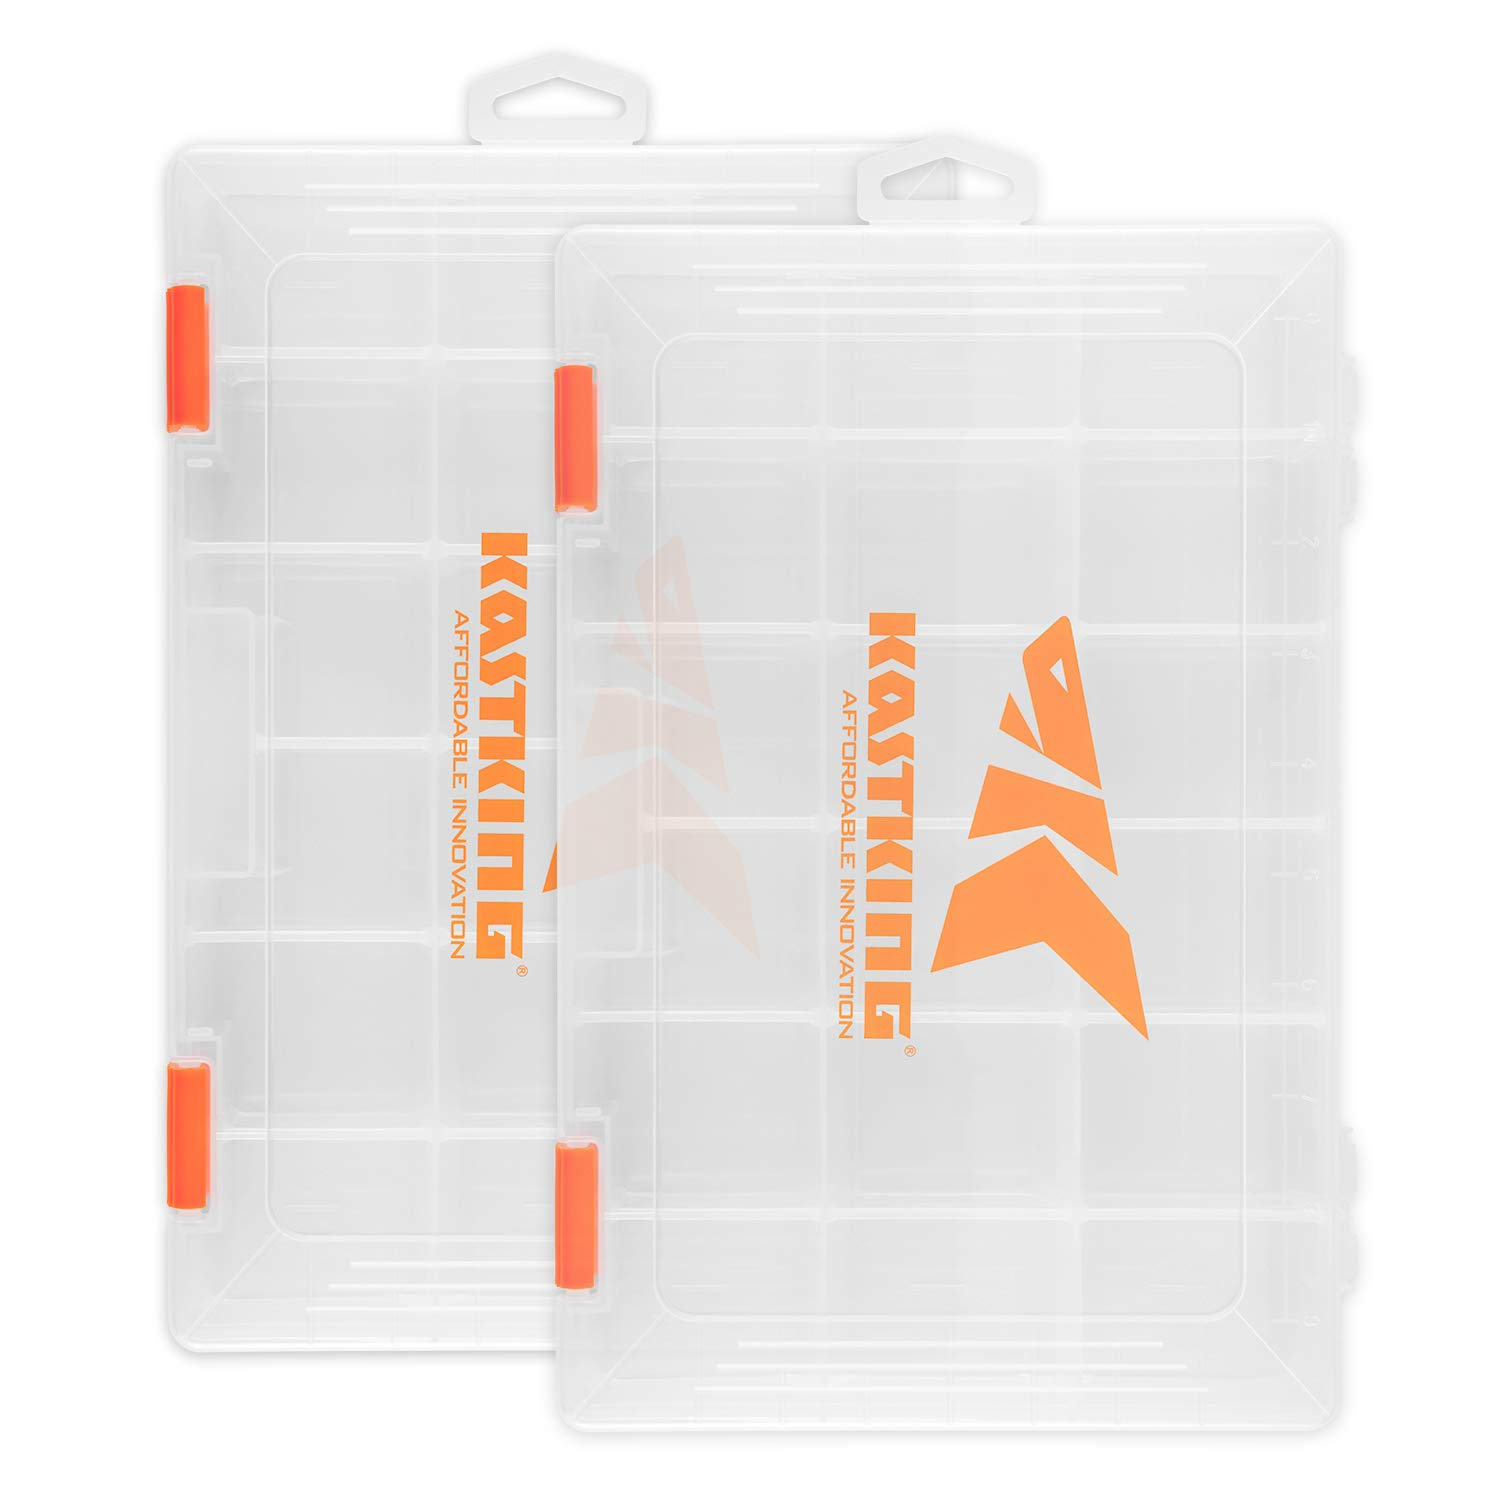 KastKing Tackle Boxes,Two 3600 Trays, 10.8x7.25x1.65 Inches by KastKing